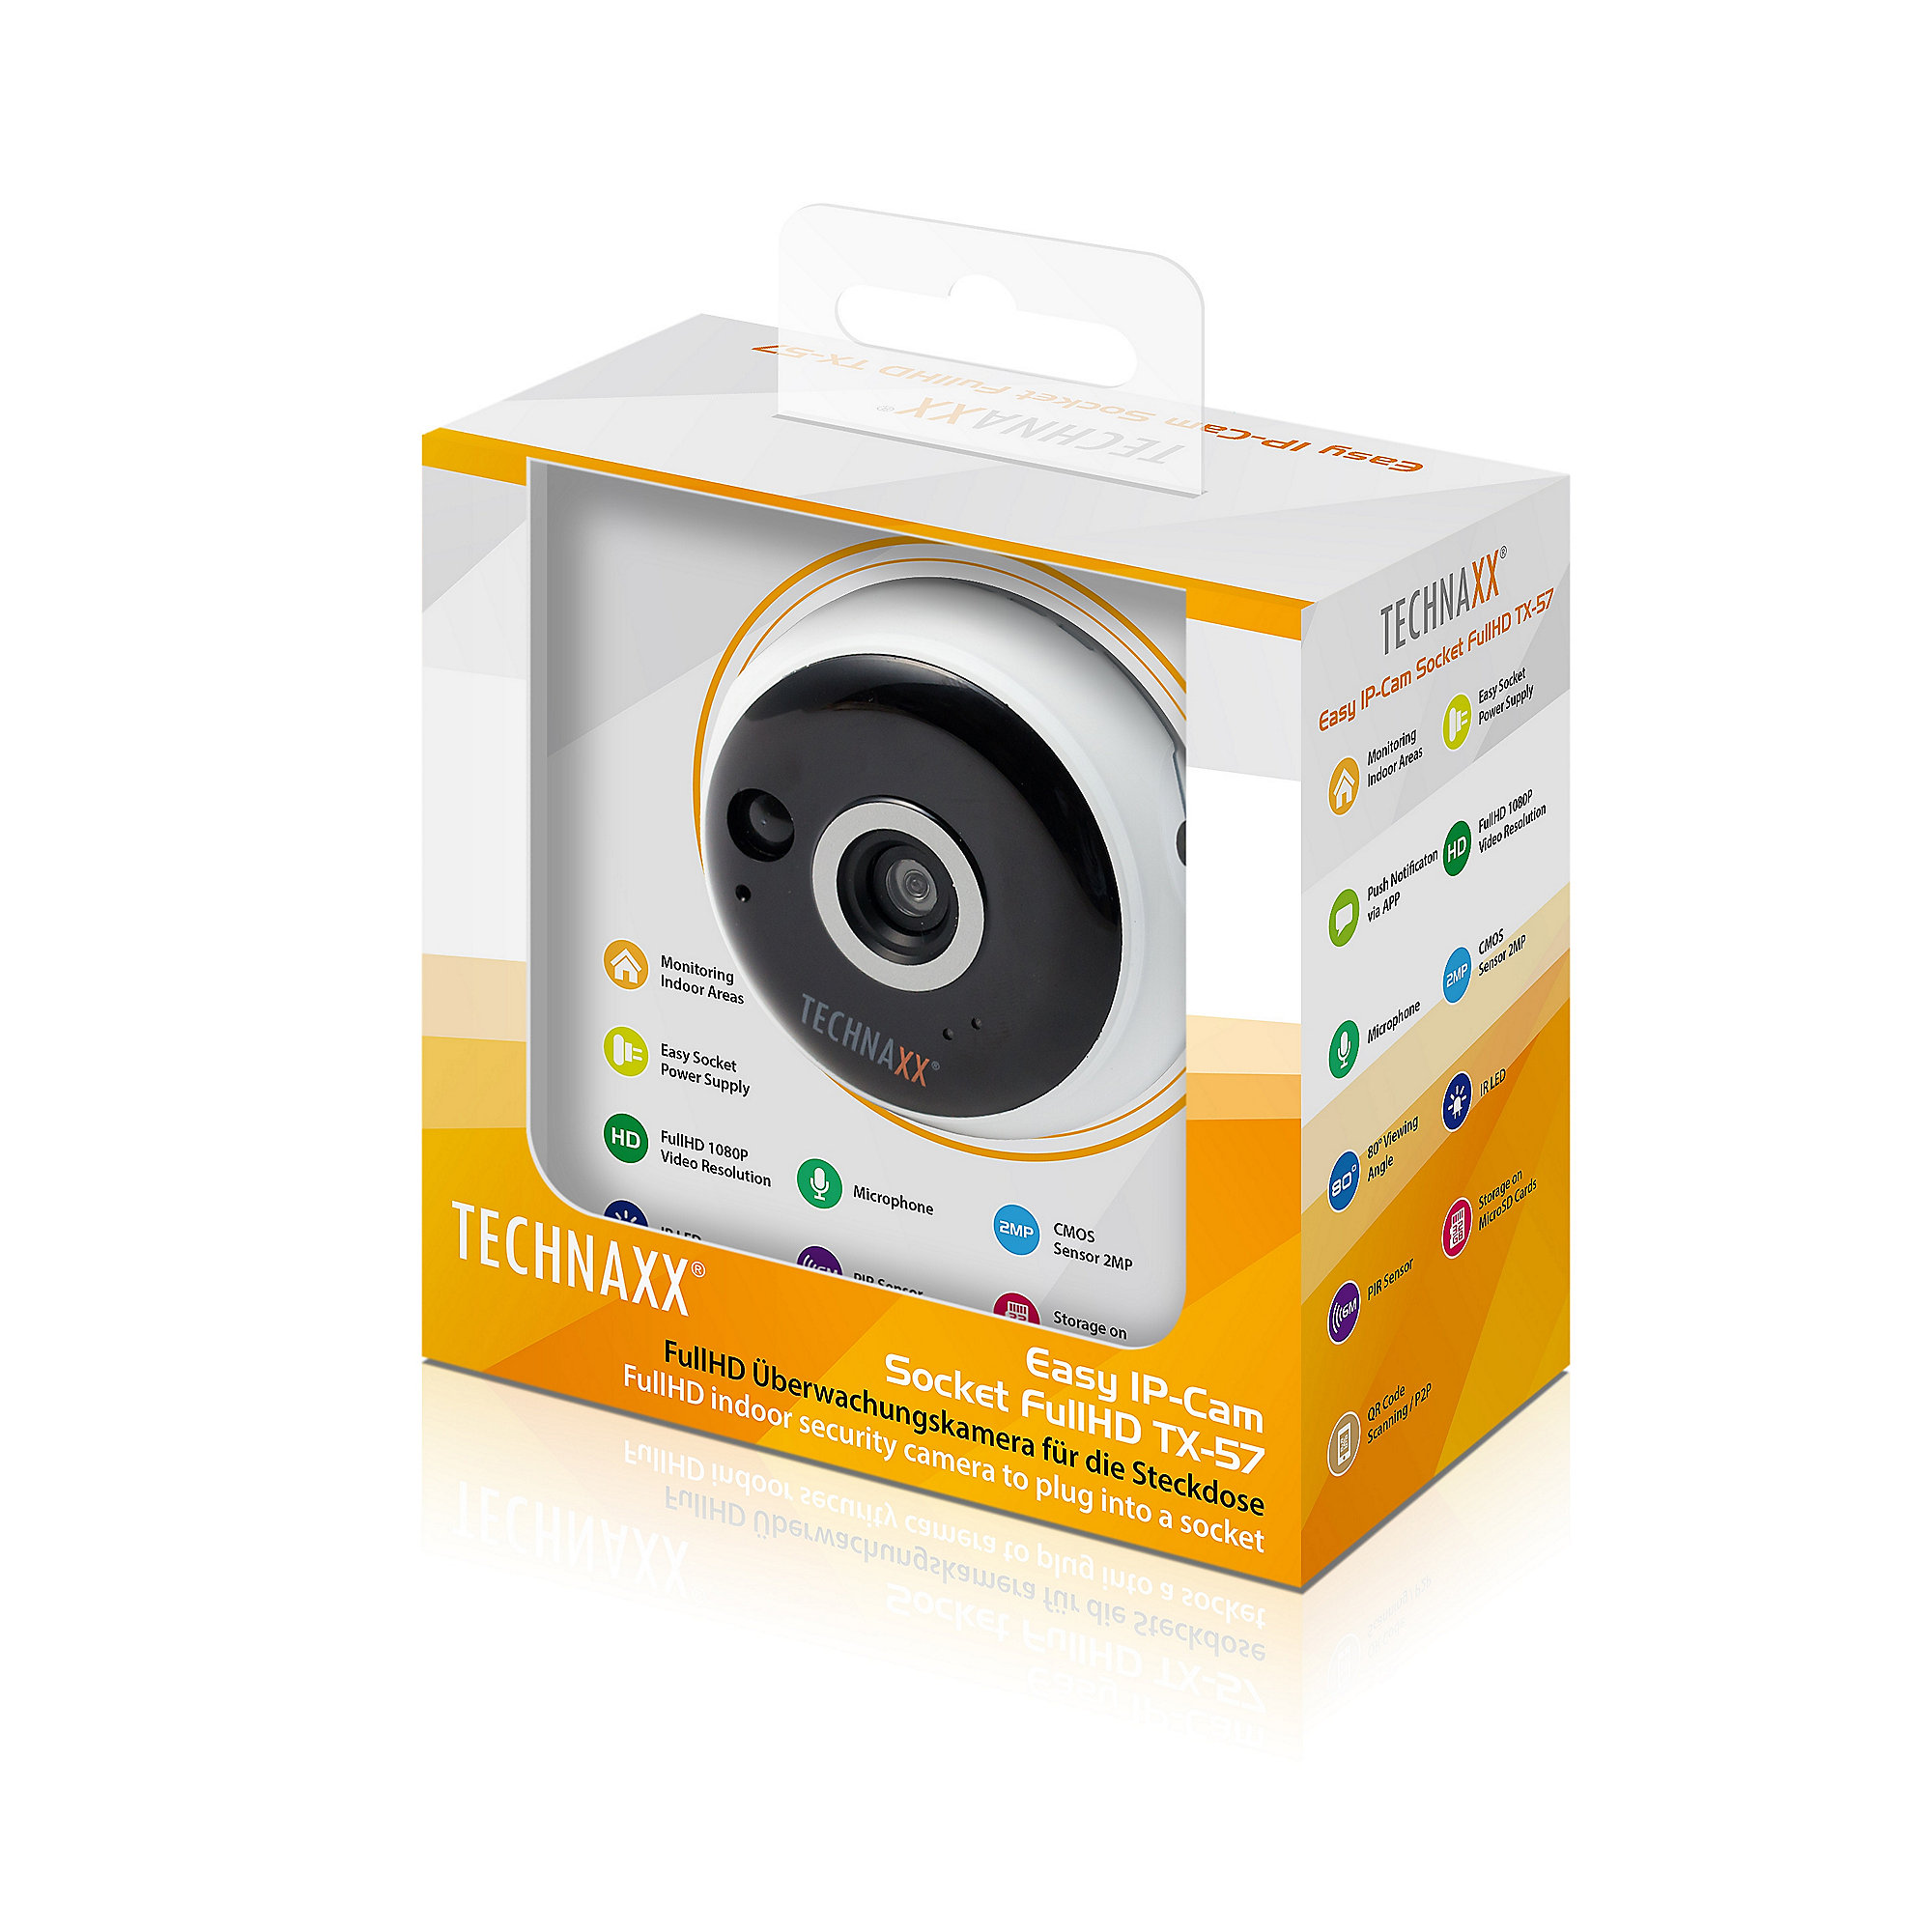 Technaxx TX-57 Indoor Easy IP FullHD Kamera für die Steckdose 2 MP 1080p